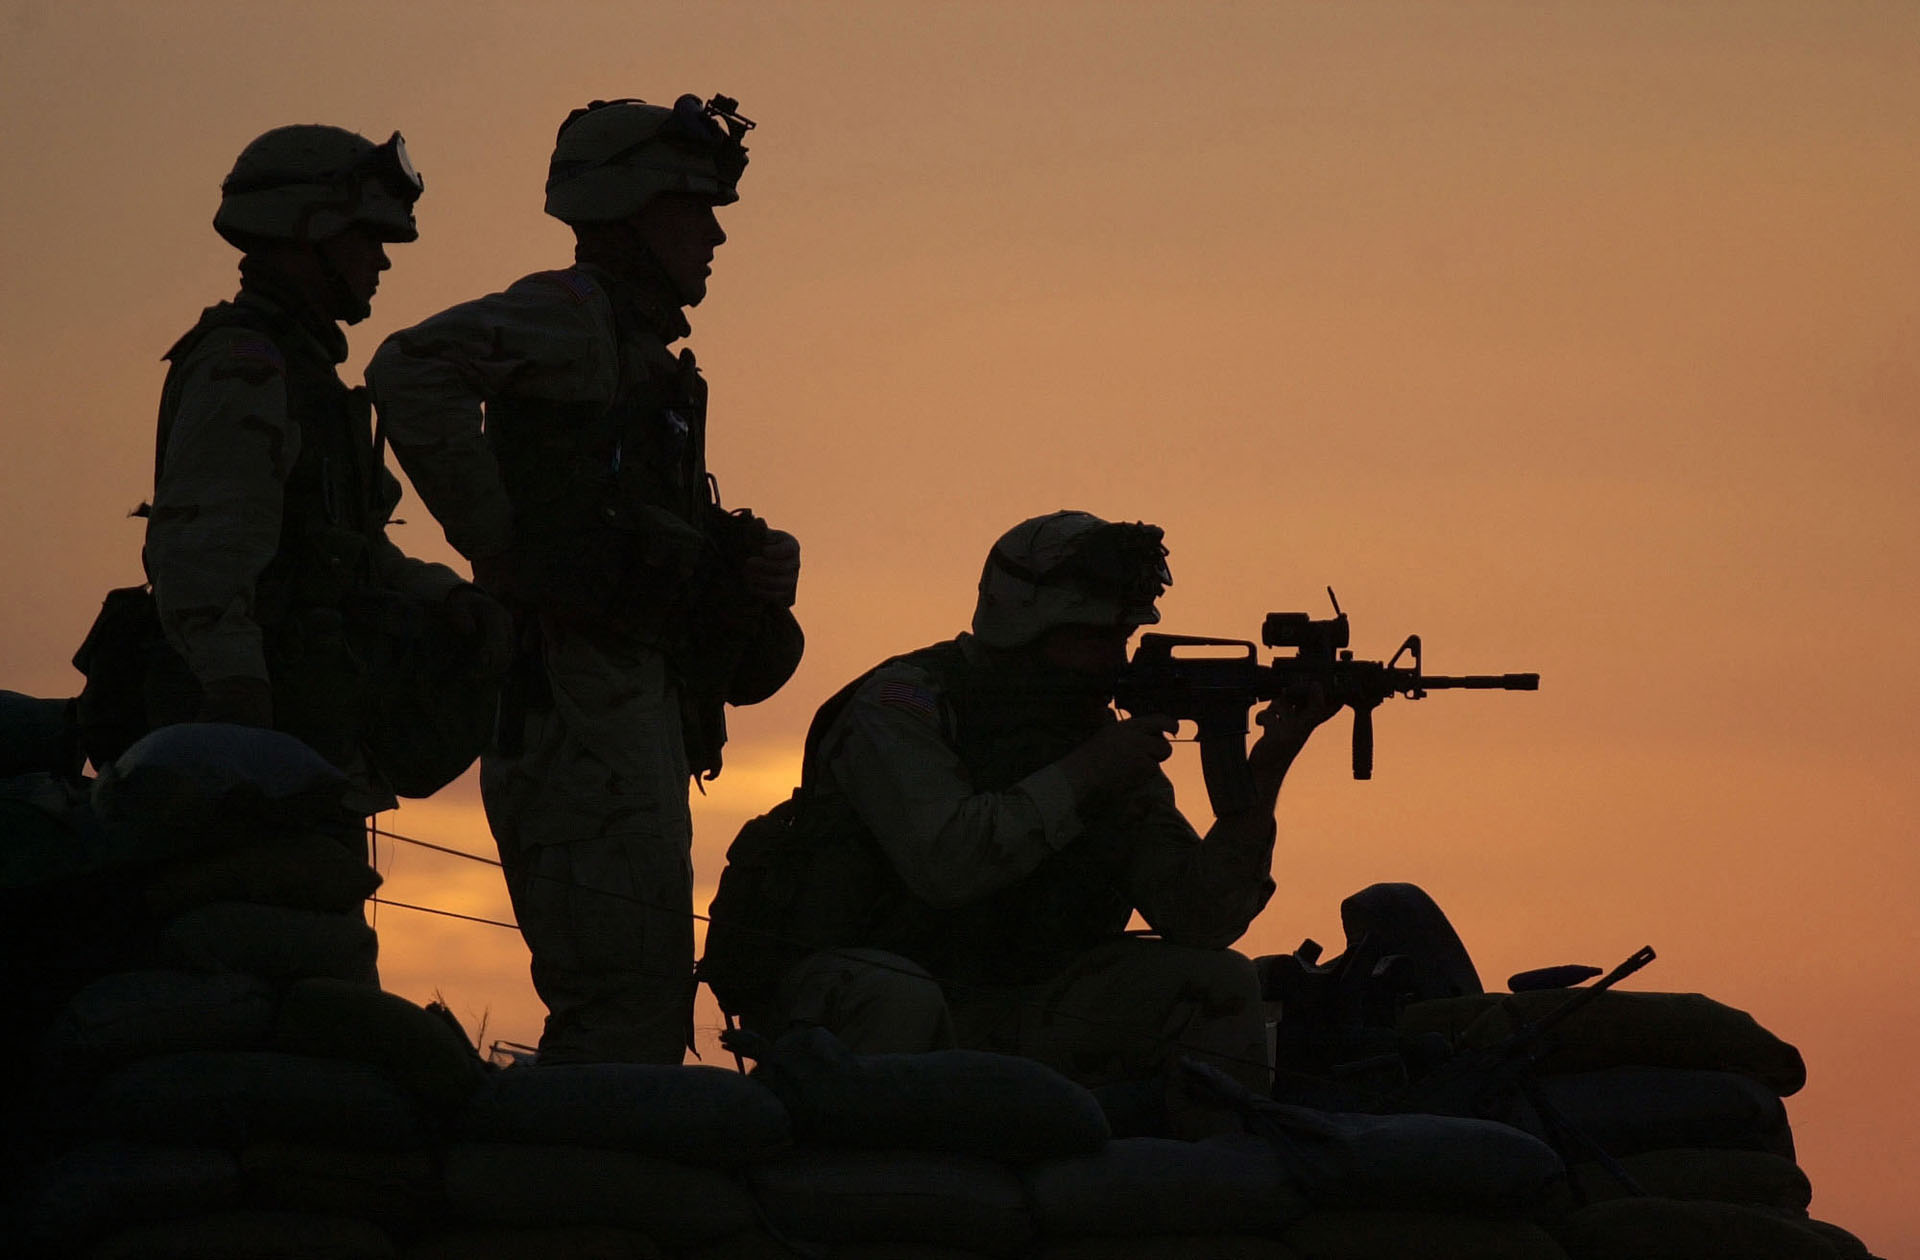 army wallpaper6 Best Army Silhouetted Wallpapers